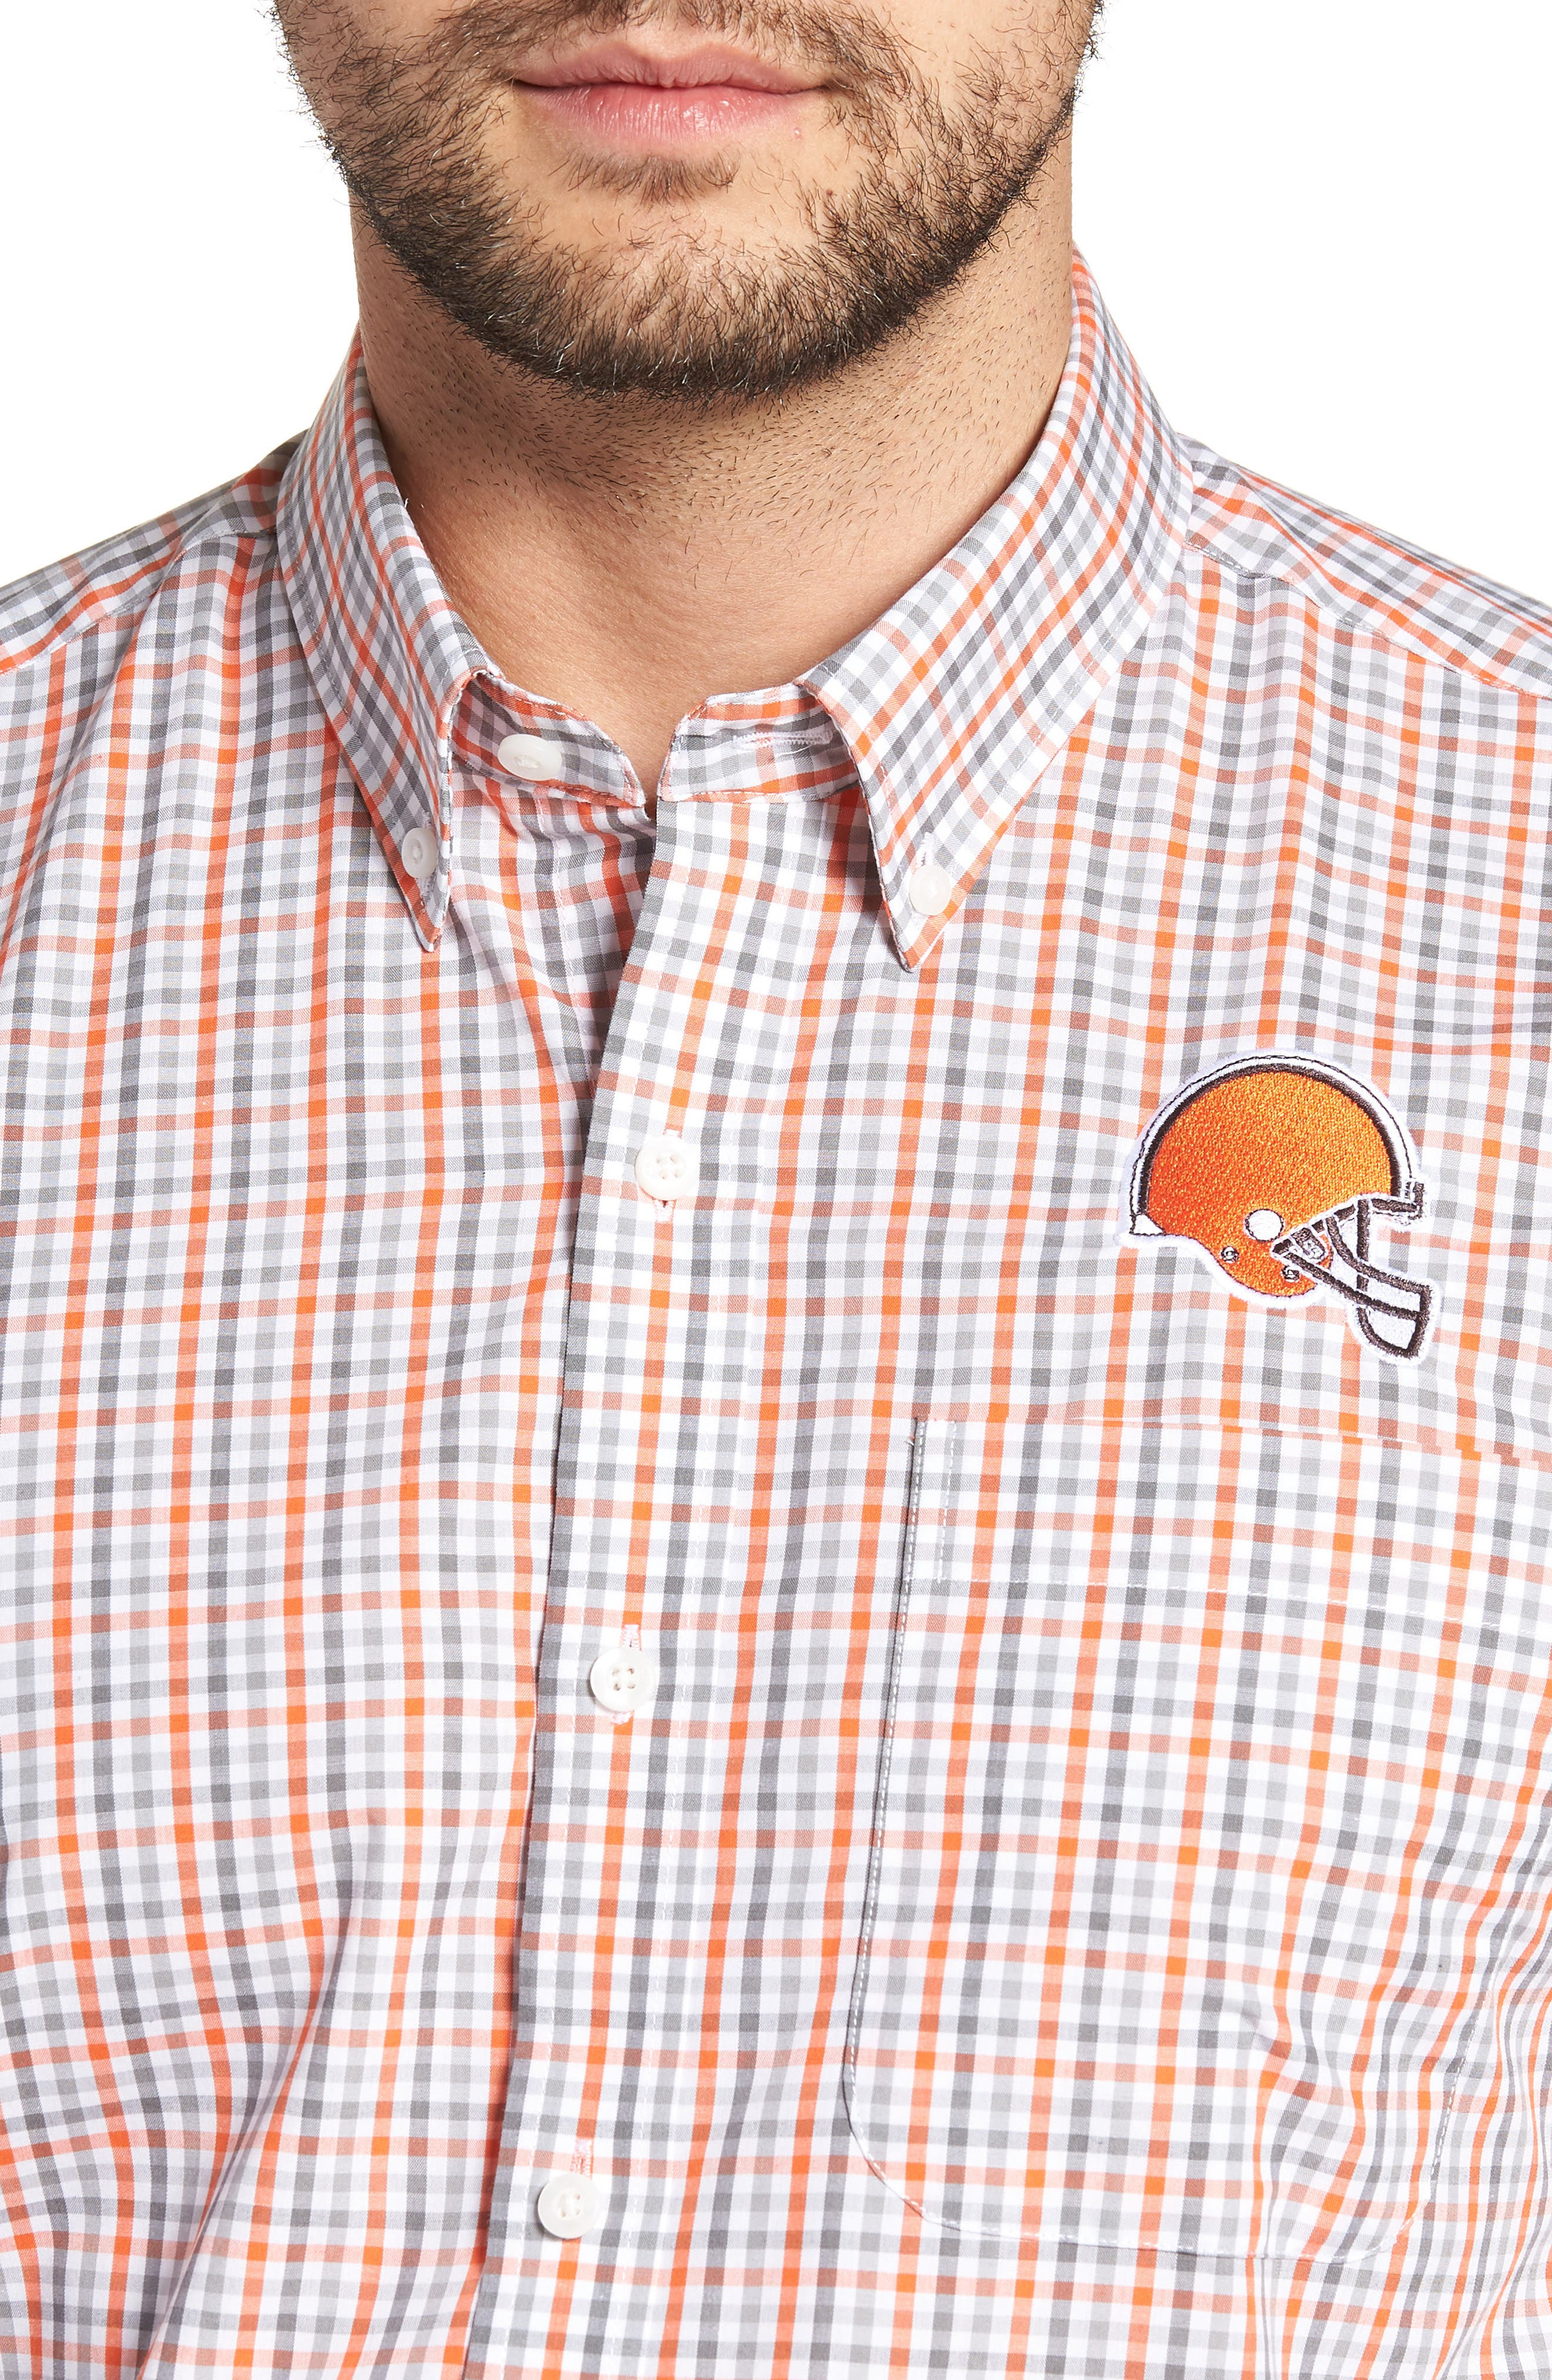 Cleveland Browns - Gilman Regular Fit Plaid Sport Shirt,                             Alternate thumbnail 4, color,                             COLLEGE ORANGE